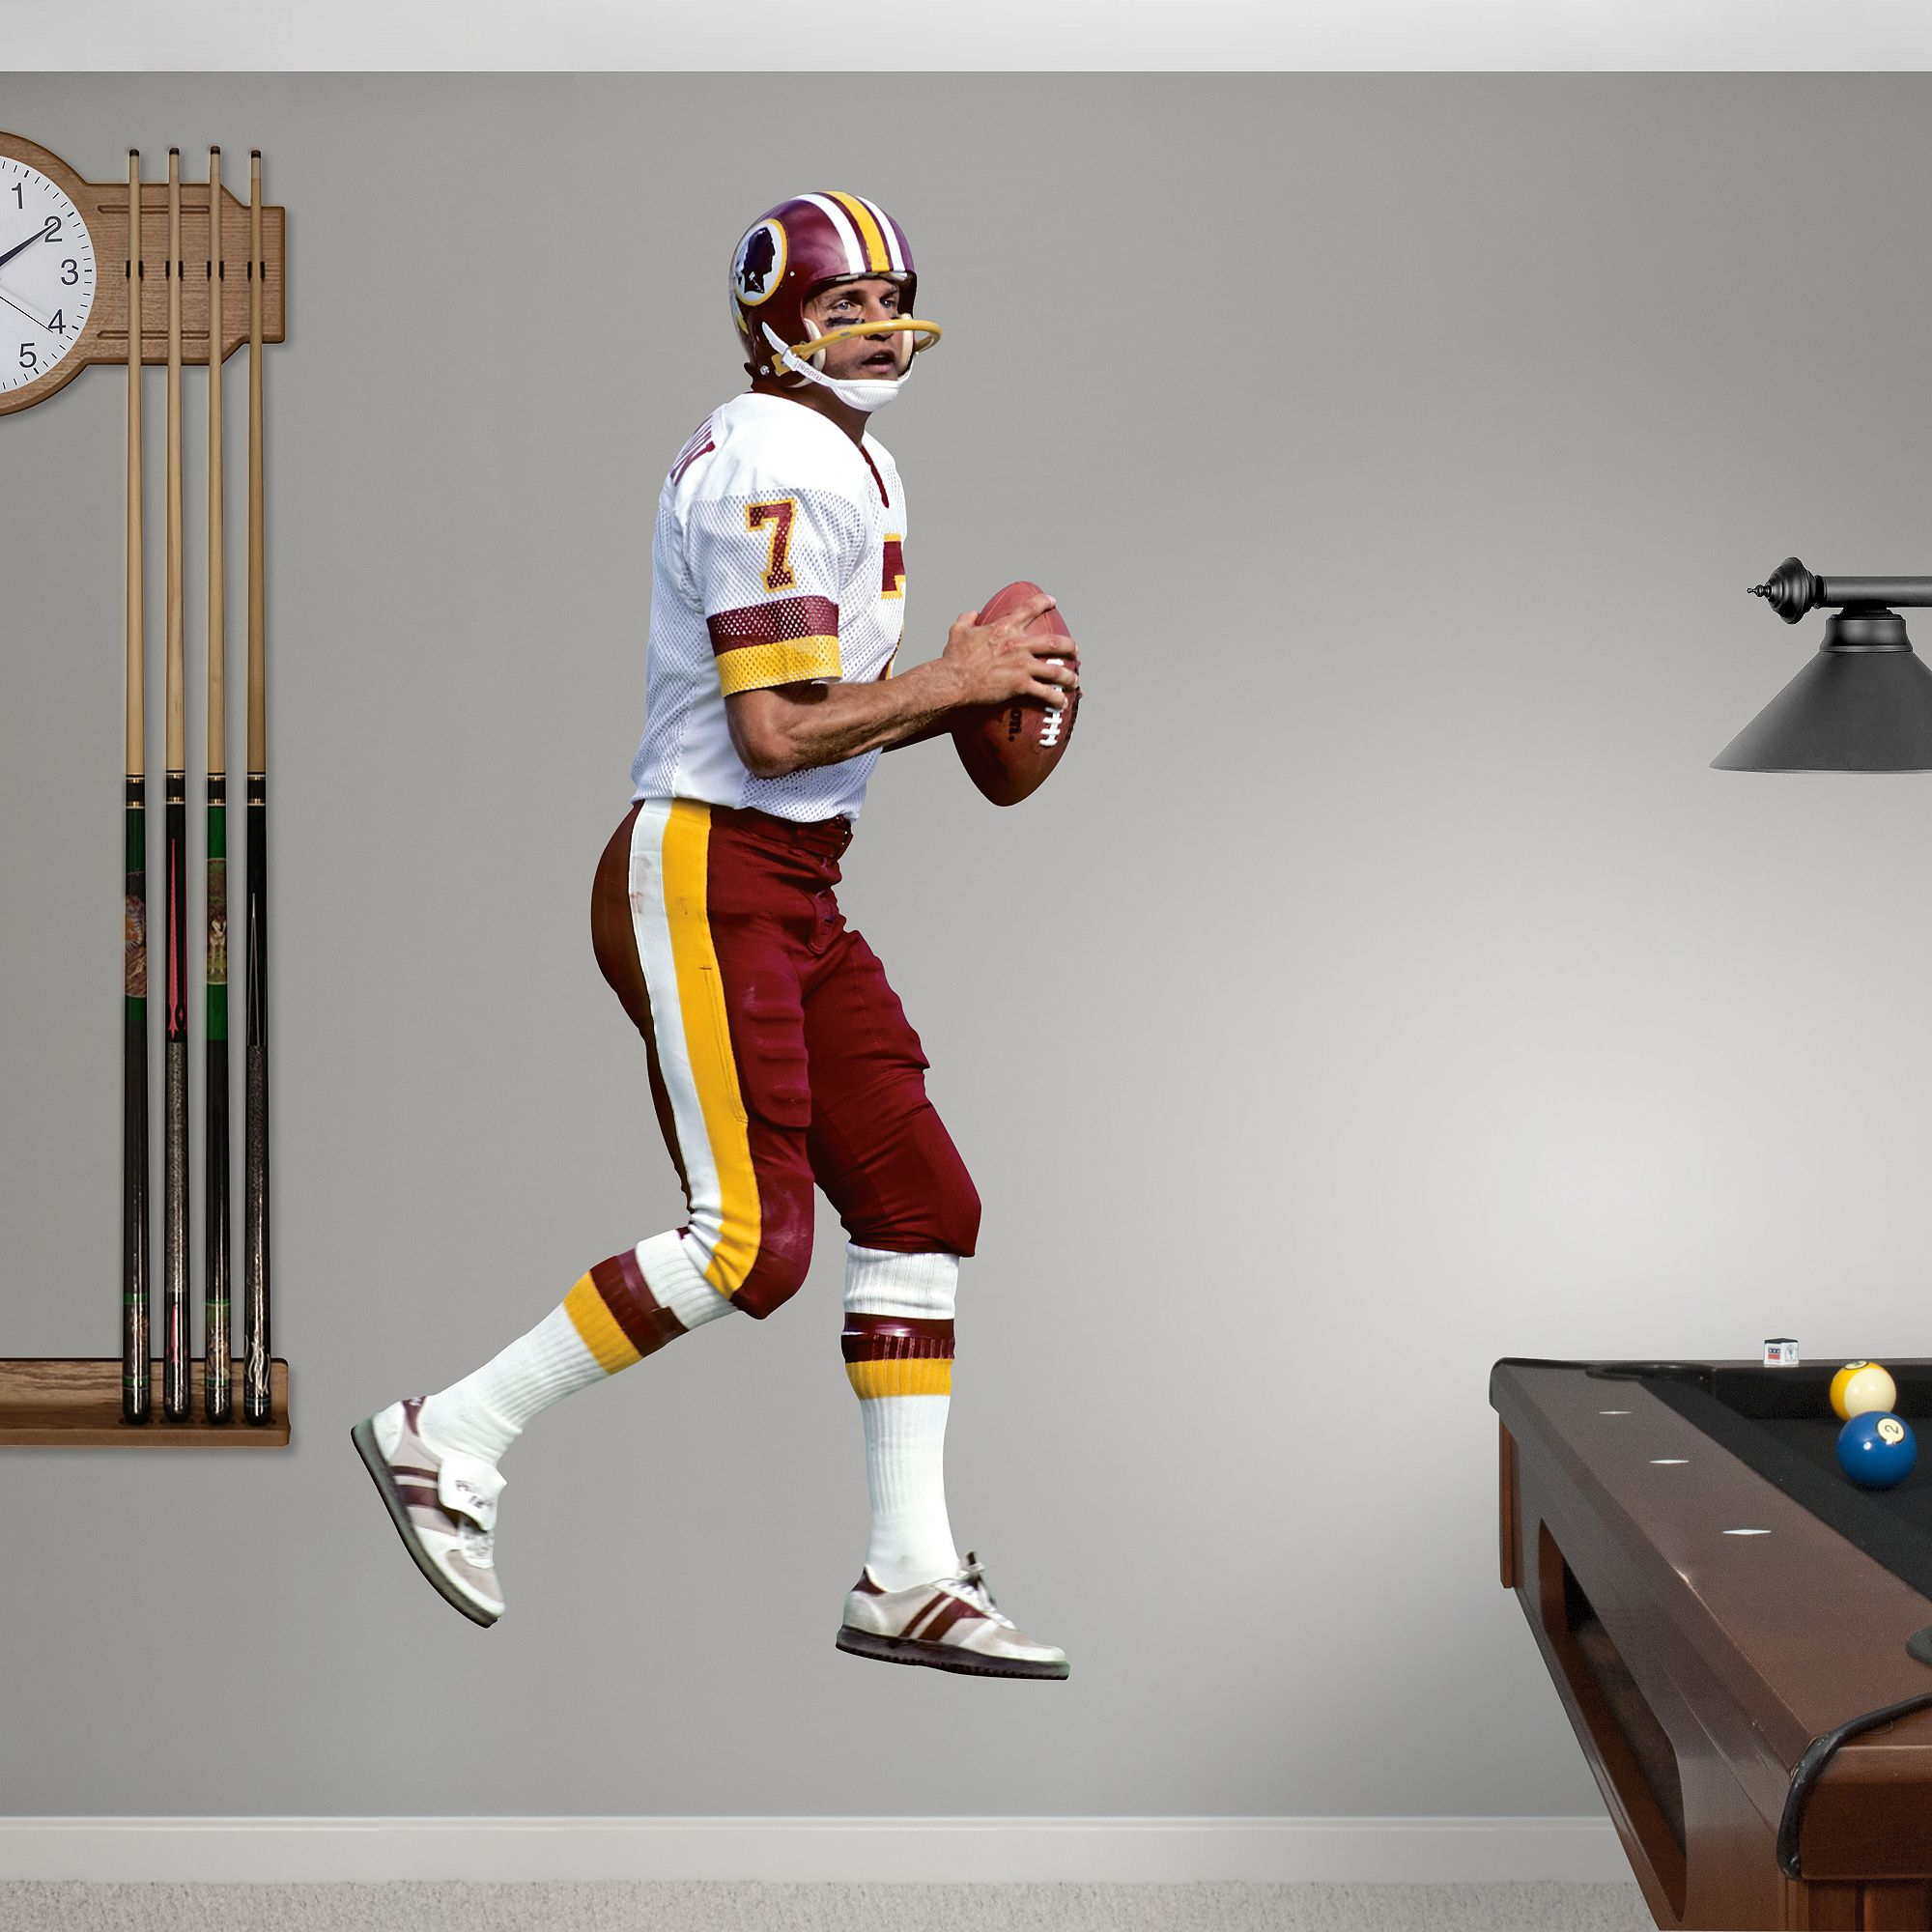 Fathead Wall Decal | Washington Redskins Wall Decal | Sports